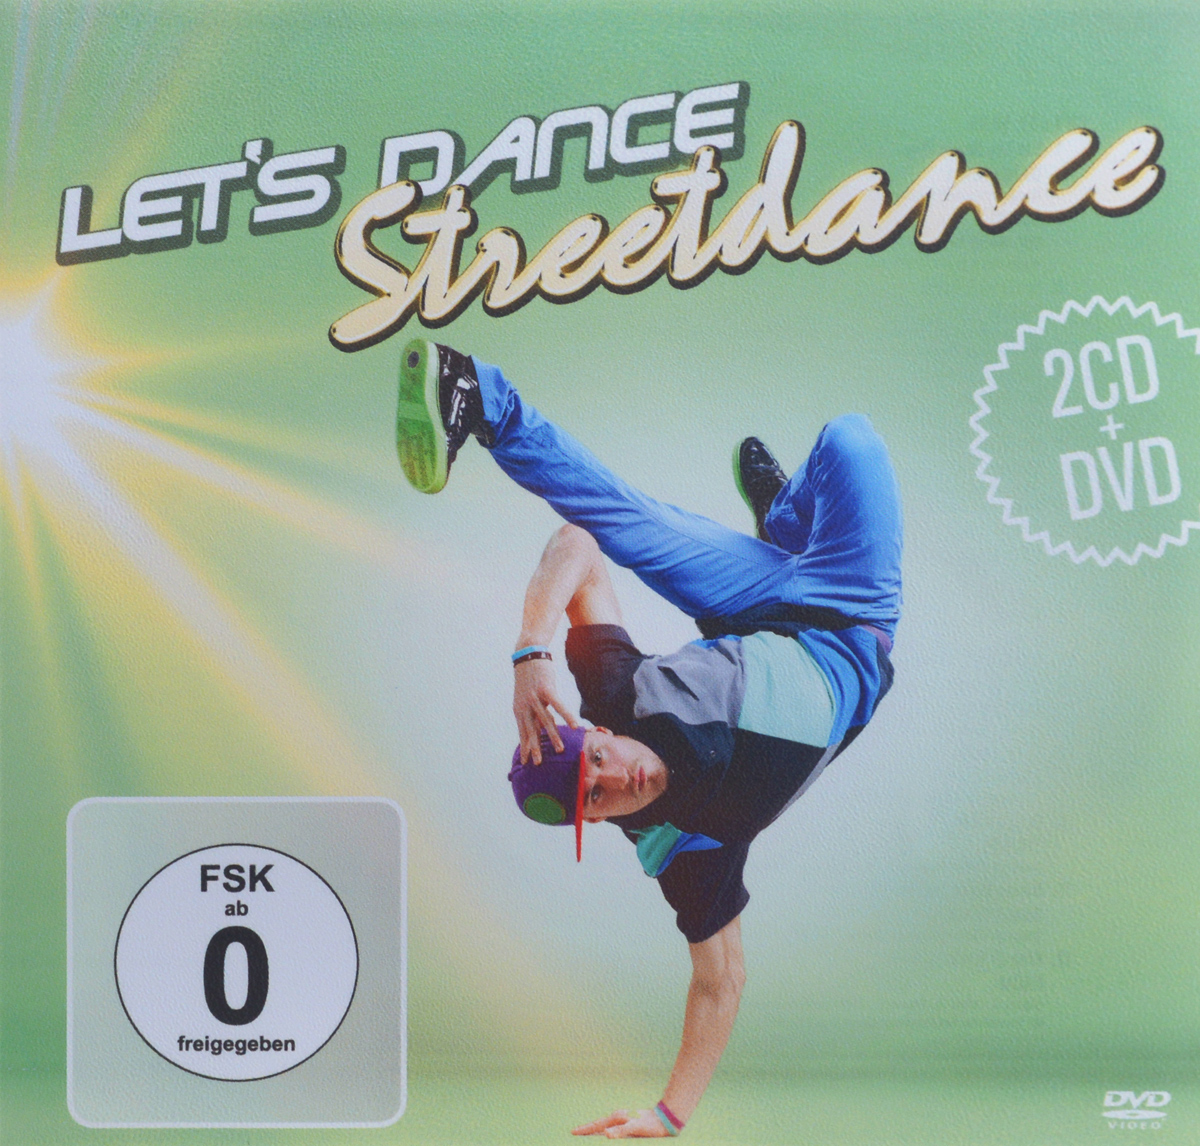 Let's Dance. Streetdance (2 CD + DVD) ботинки der spur der spur de034amwiz42